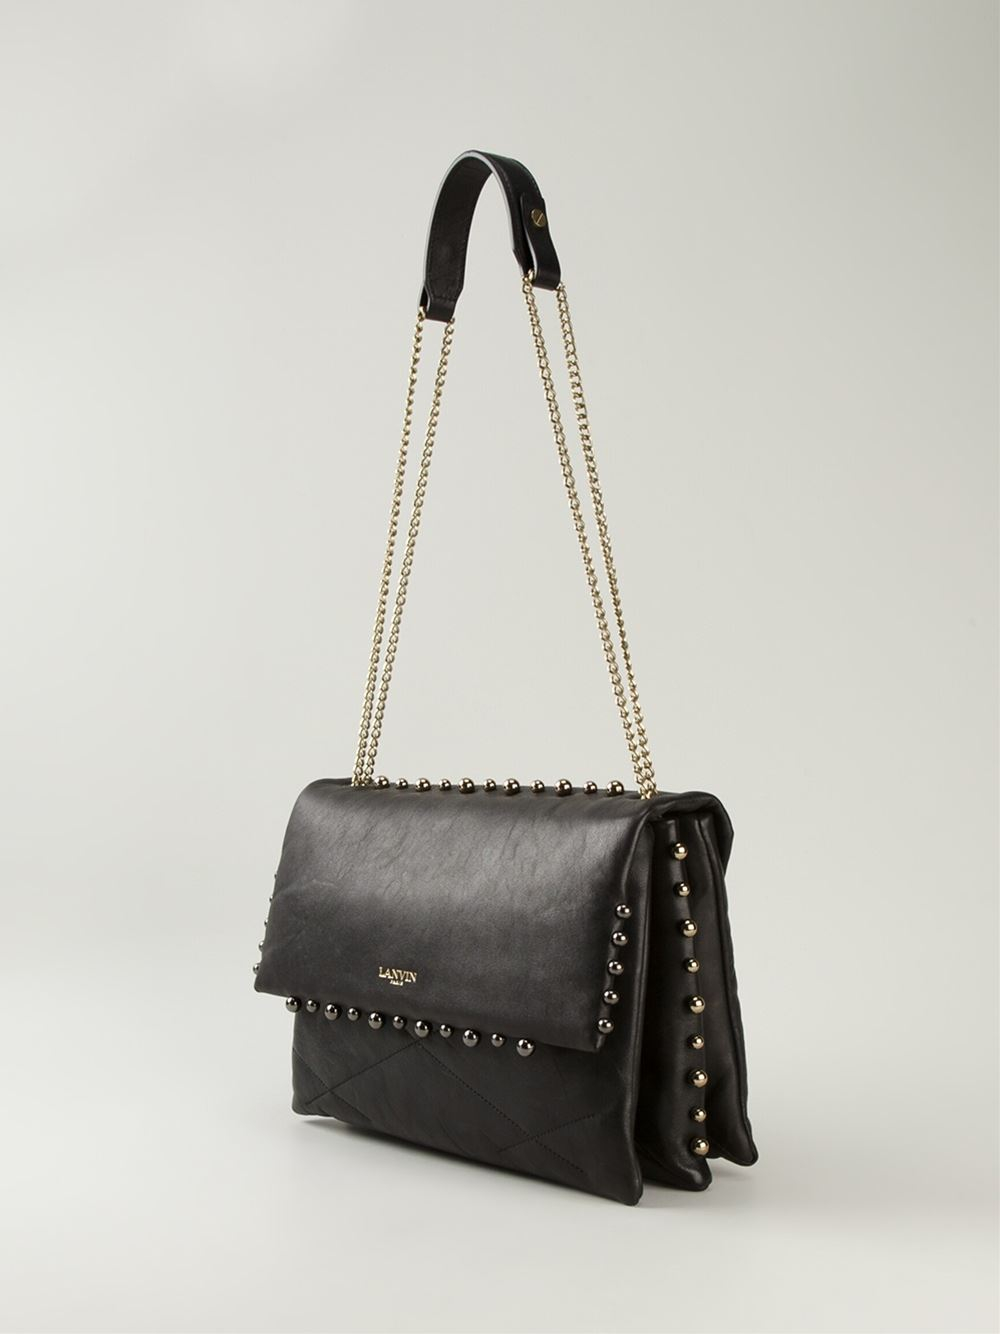 0a5e44d0d145 Lyst - Lanvin  Sugar  Studded Shoulder Bag in Black